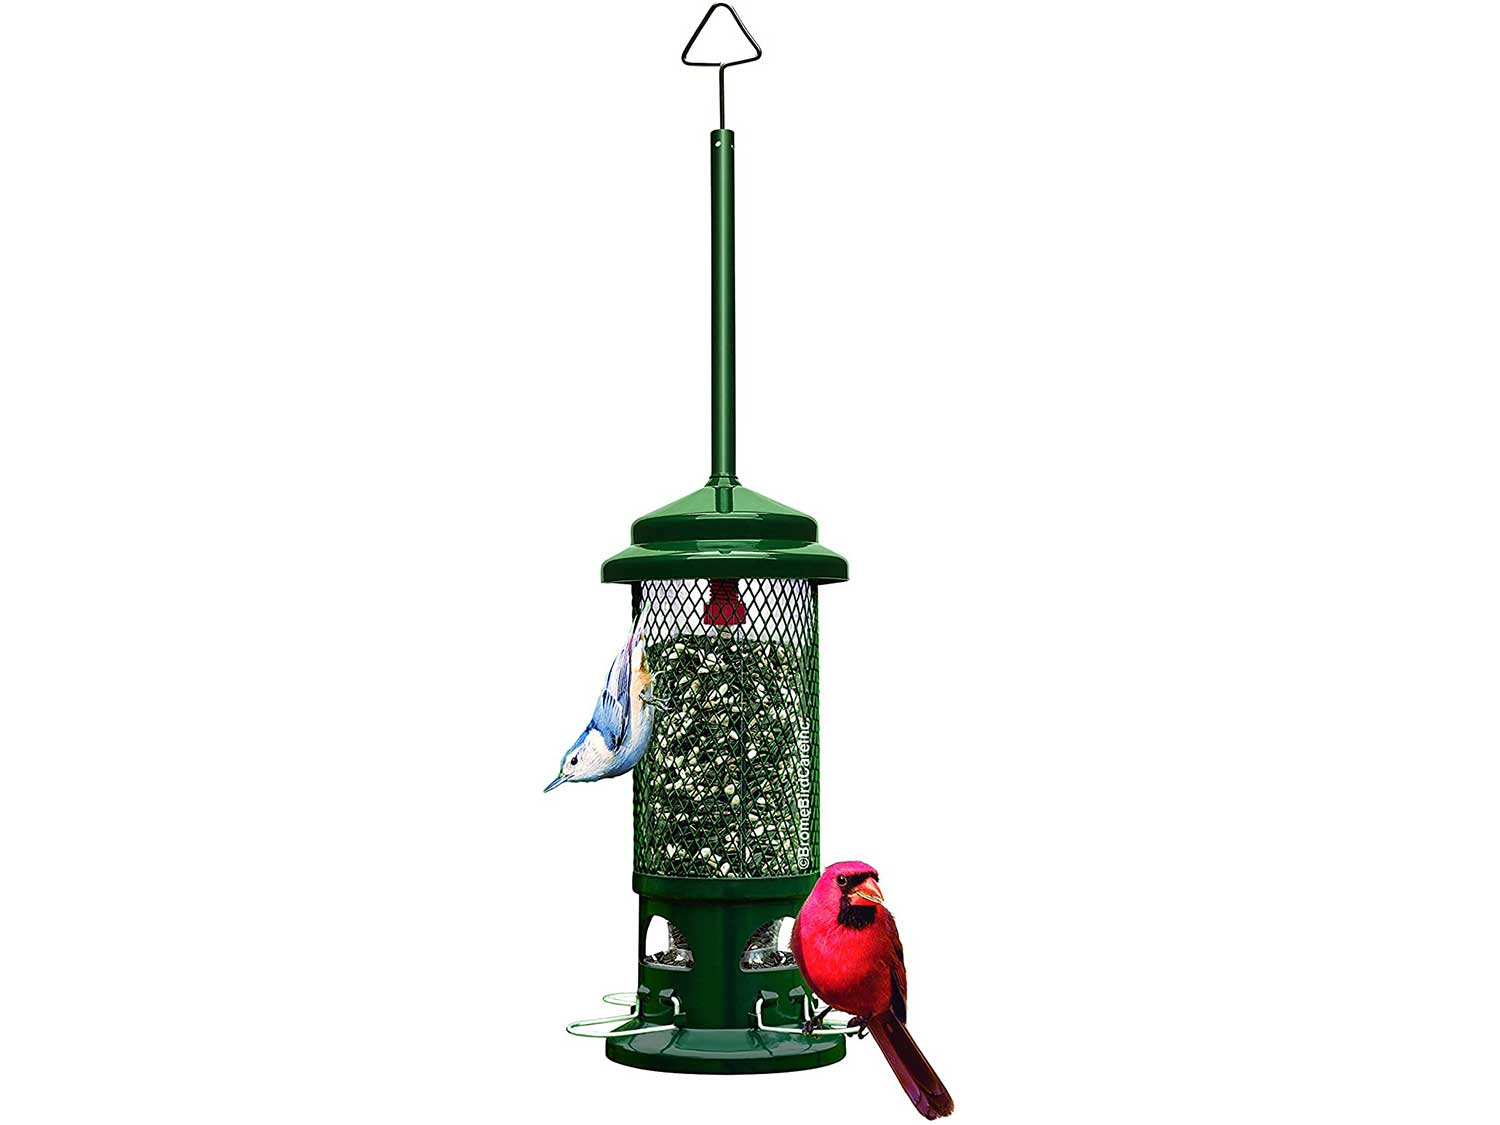 Squirrel Buster Standard Squirrel-proof Bird Feeder w/4 Metal Perches, 1.3-pound Seed Capacity